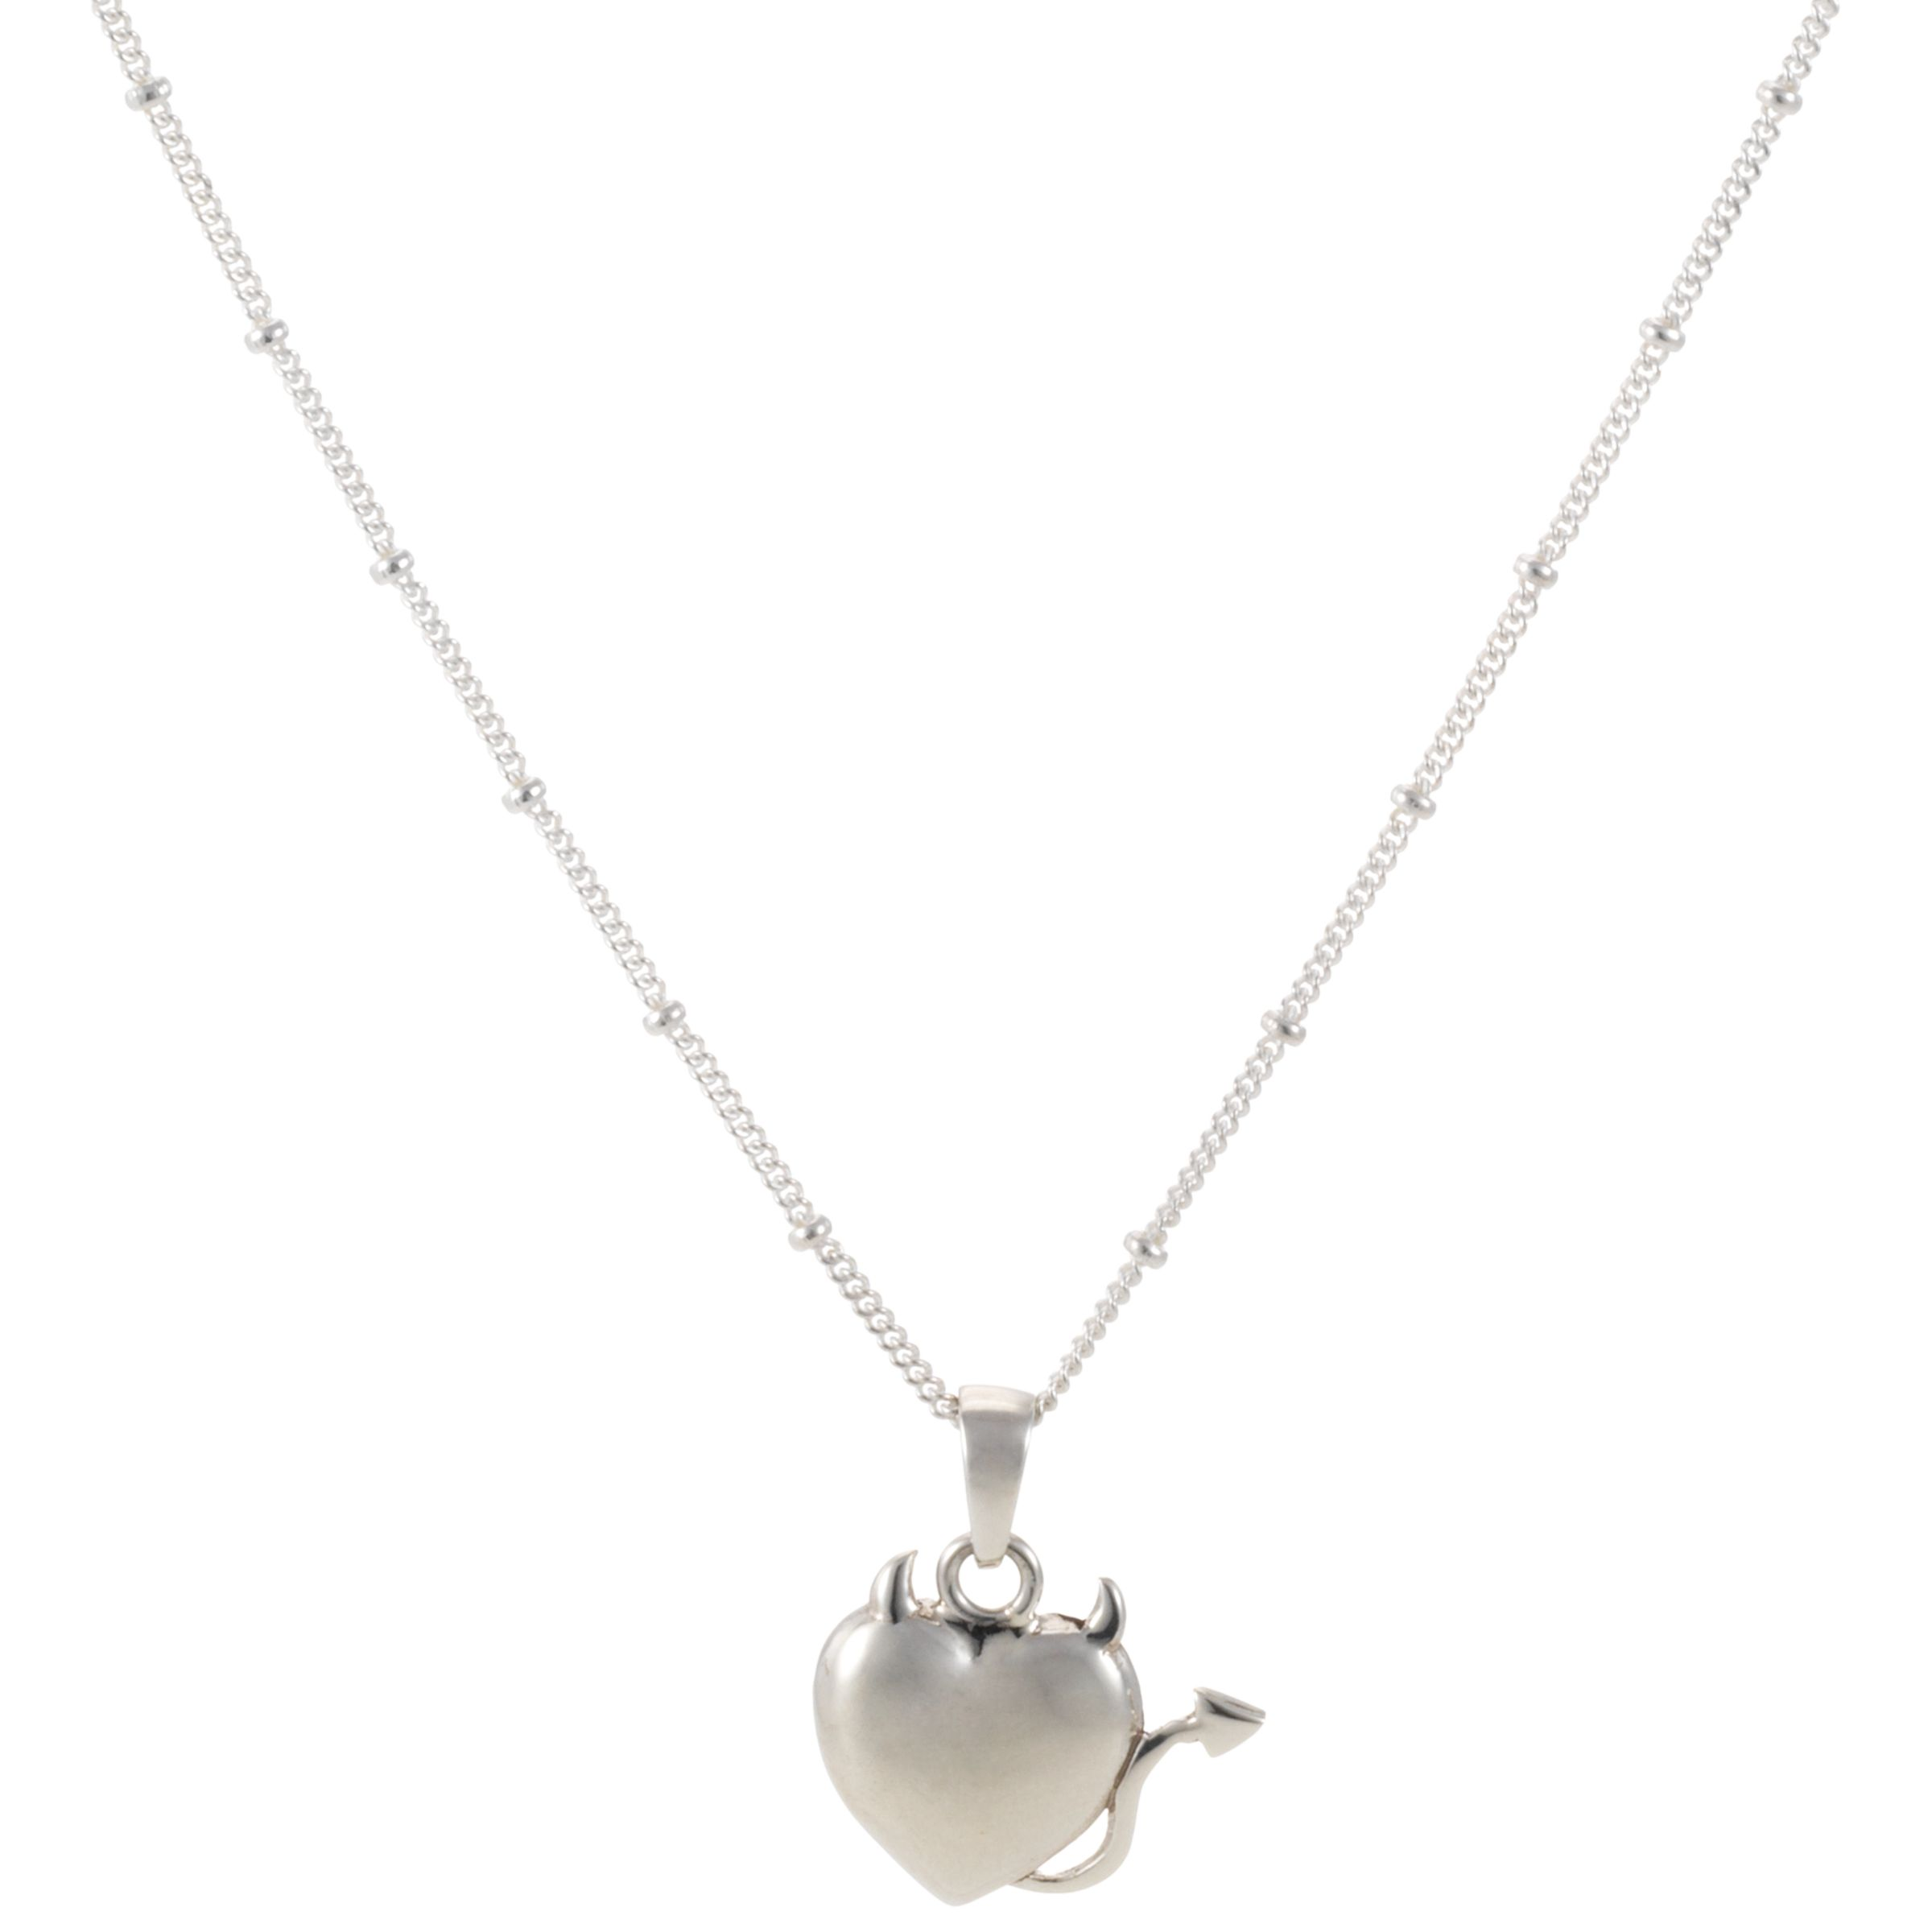 Martick Temptation Silver Heart Pendant Necklace